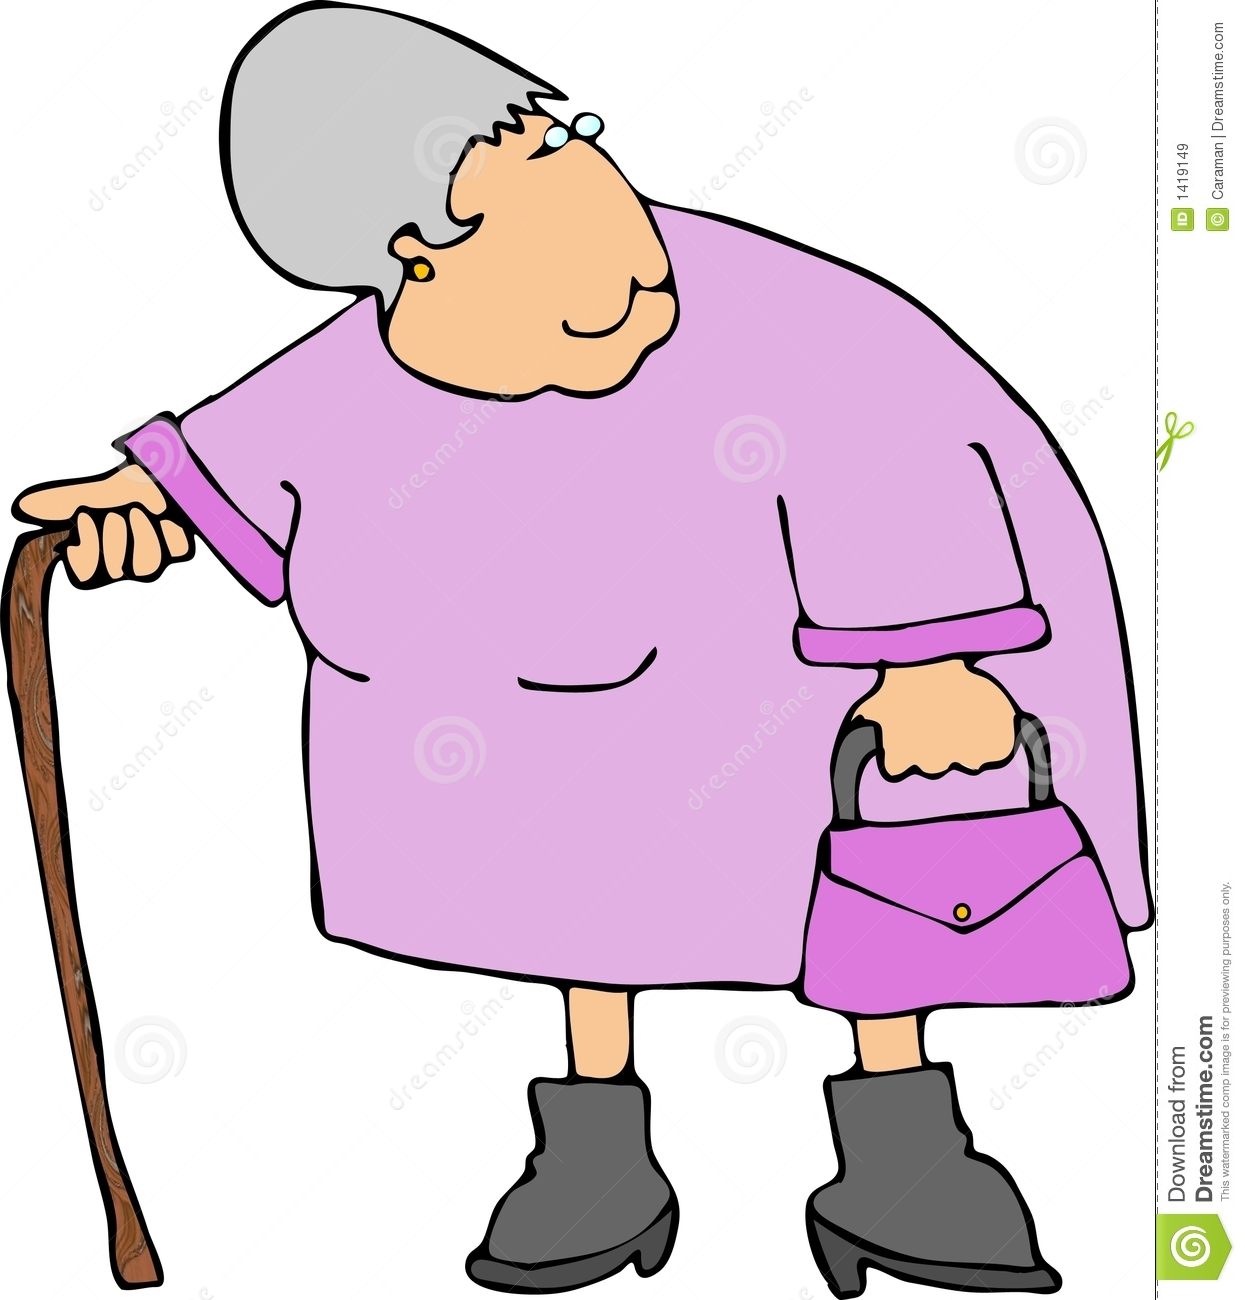 Alte frau clipart jpg free library Old Lady With Walker Clipart - Clipart Kid jpg free library